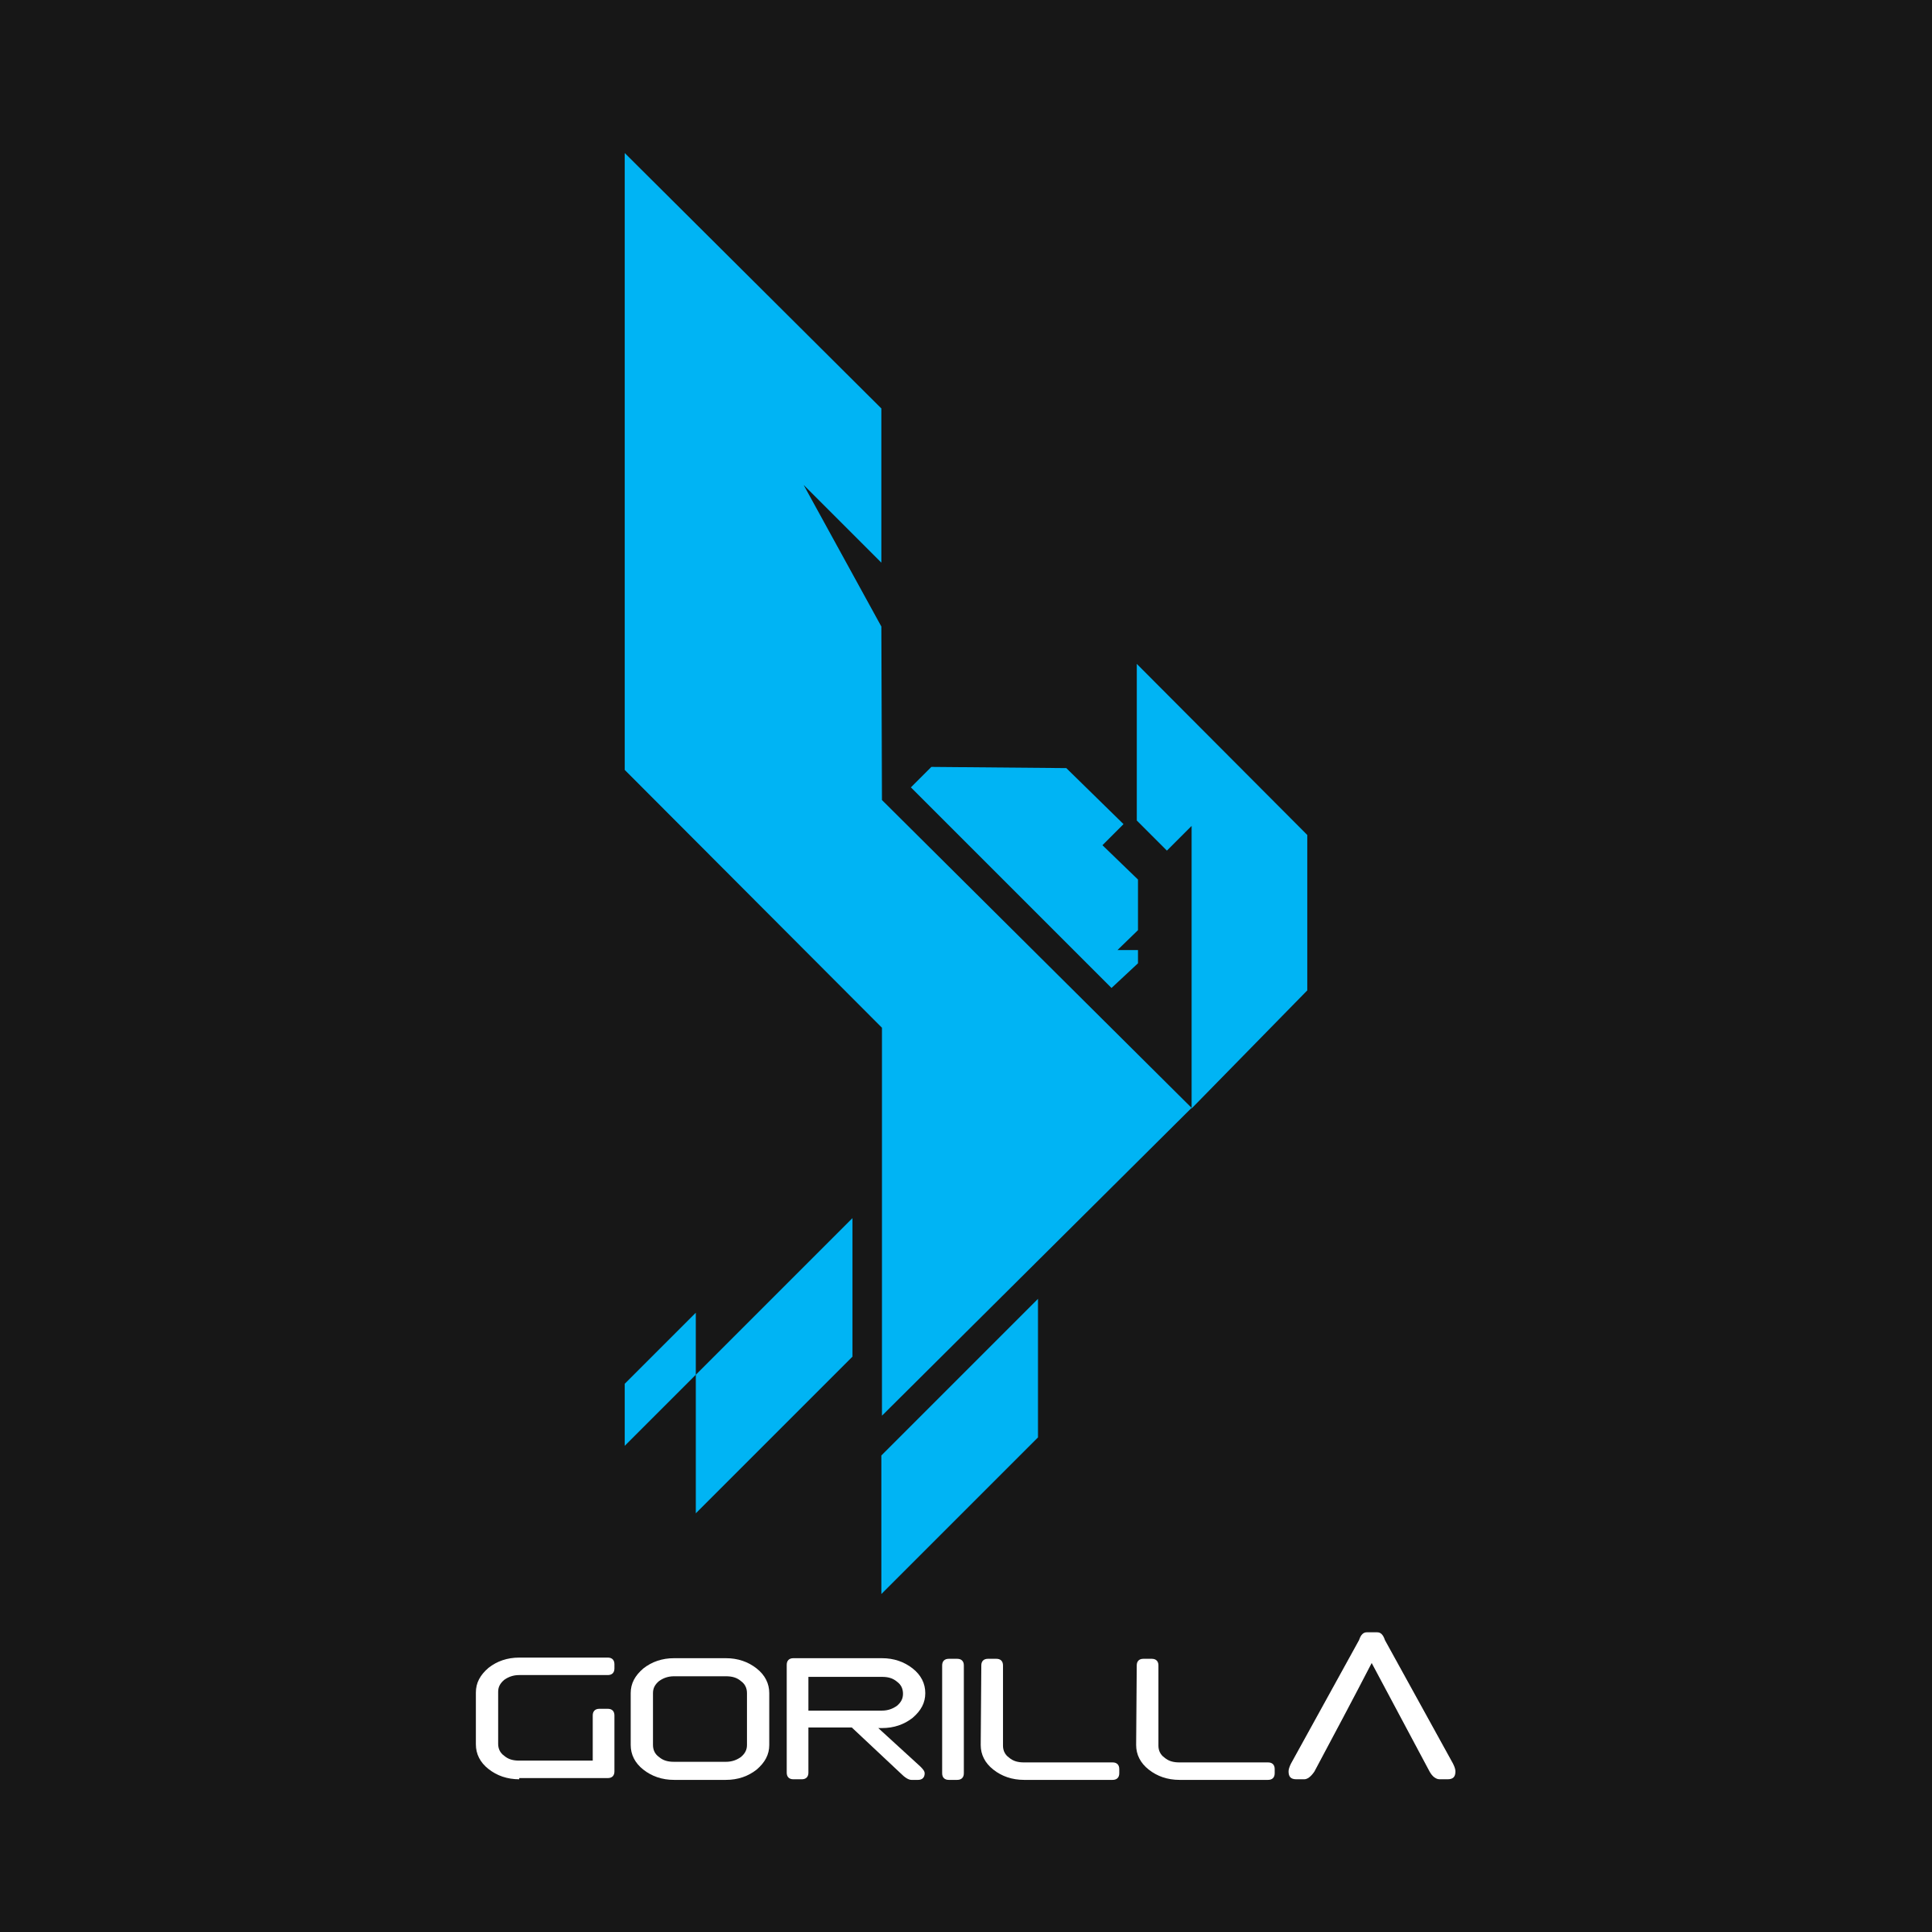 Vector gorilla logo. Png transparent svg freebie